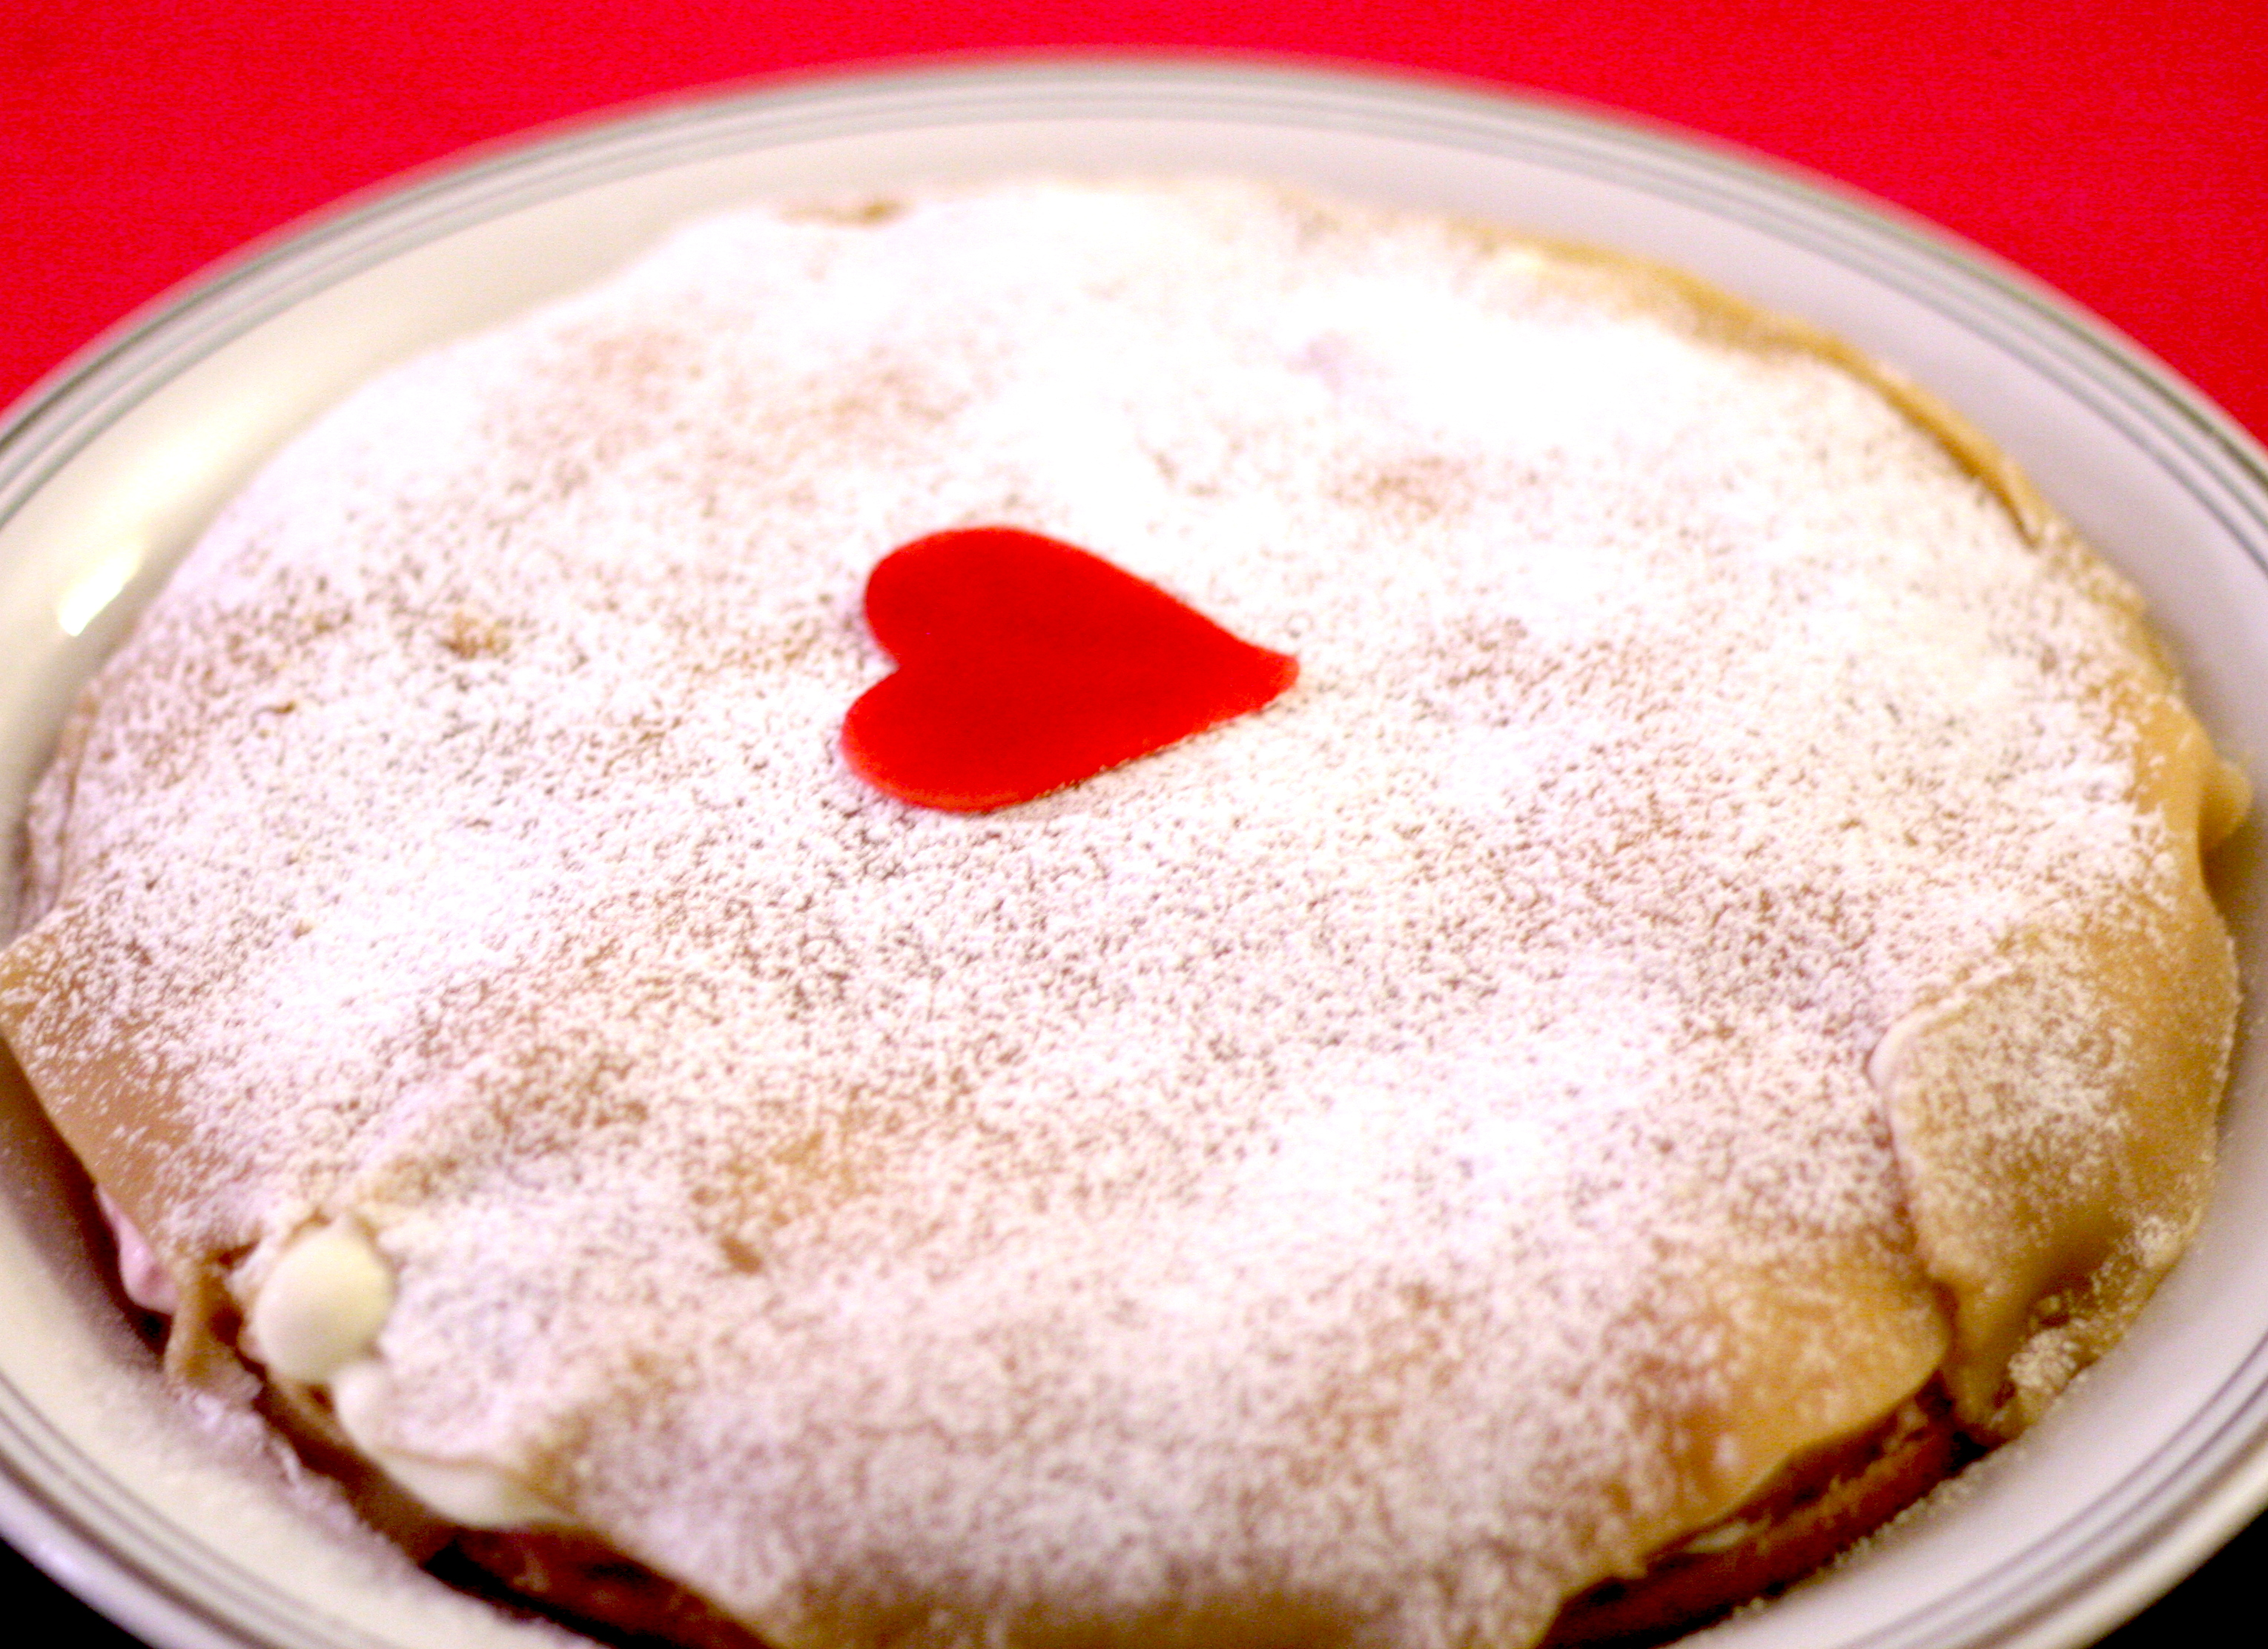 Easy Cake Decorating Ideas Princess With A Heart